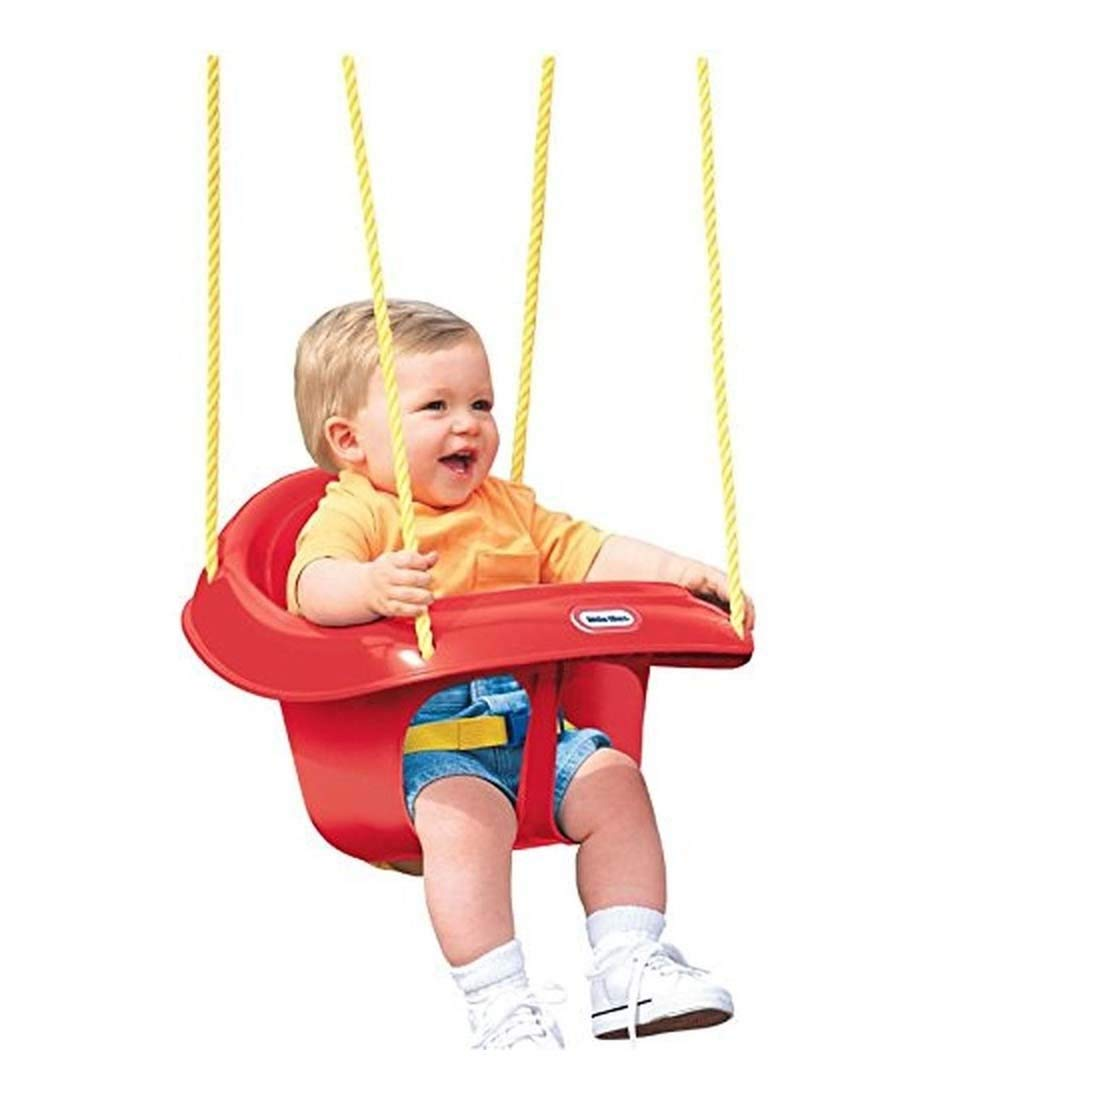 High Back Toddler Swing Frustration Weight limit up to 50lbs, Brand New. Little Tikes High Back Toddler Swing By Unbranded